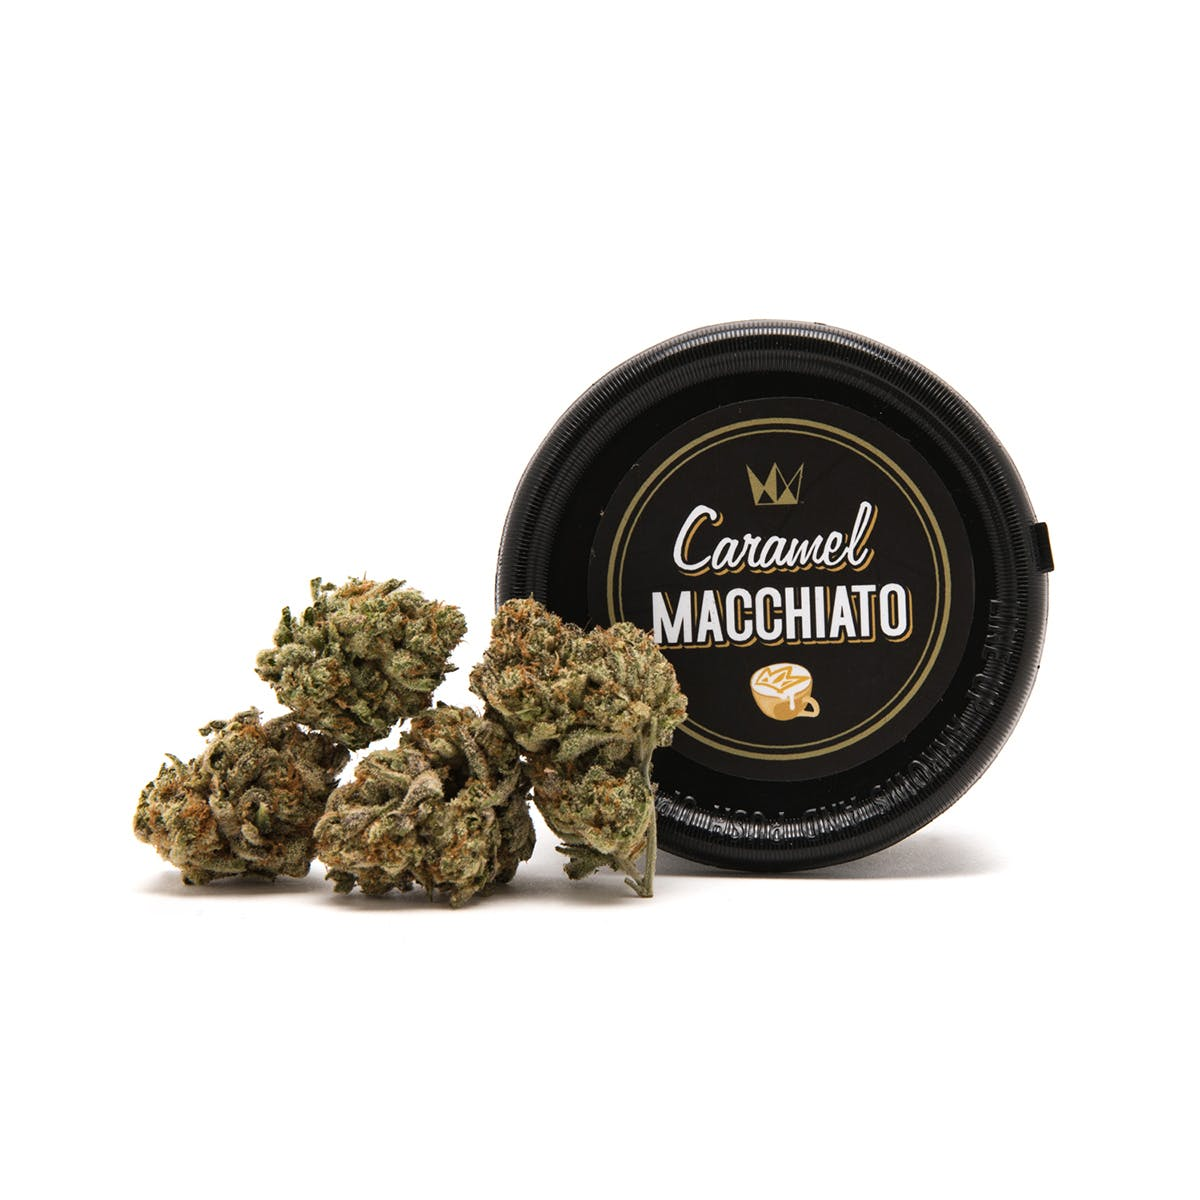 marijuana-dispensaries-church-of-newport-mesa-in-costa-mesa-caramel-macchiato